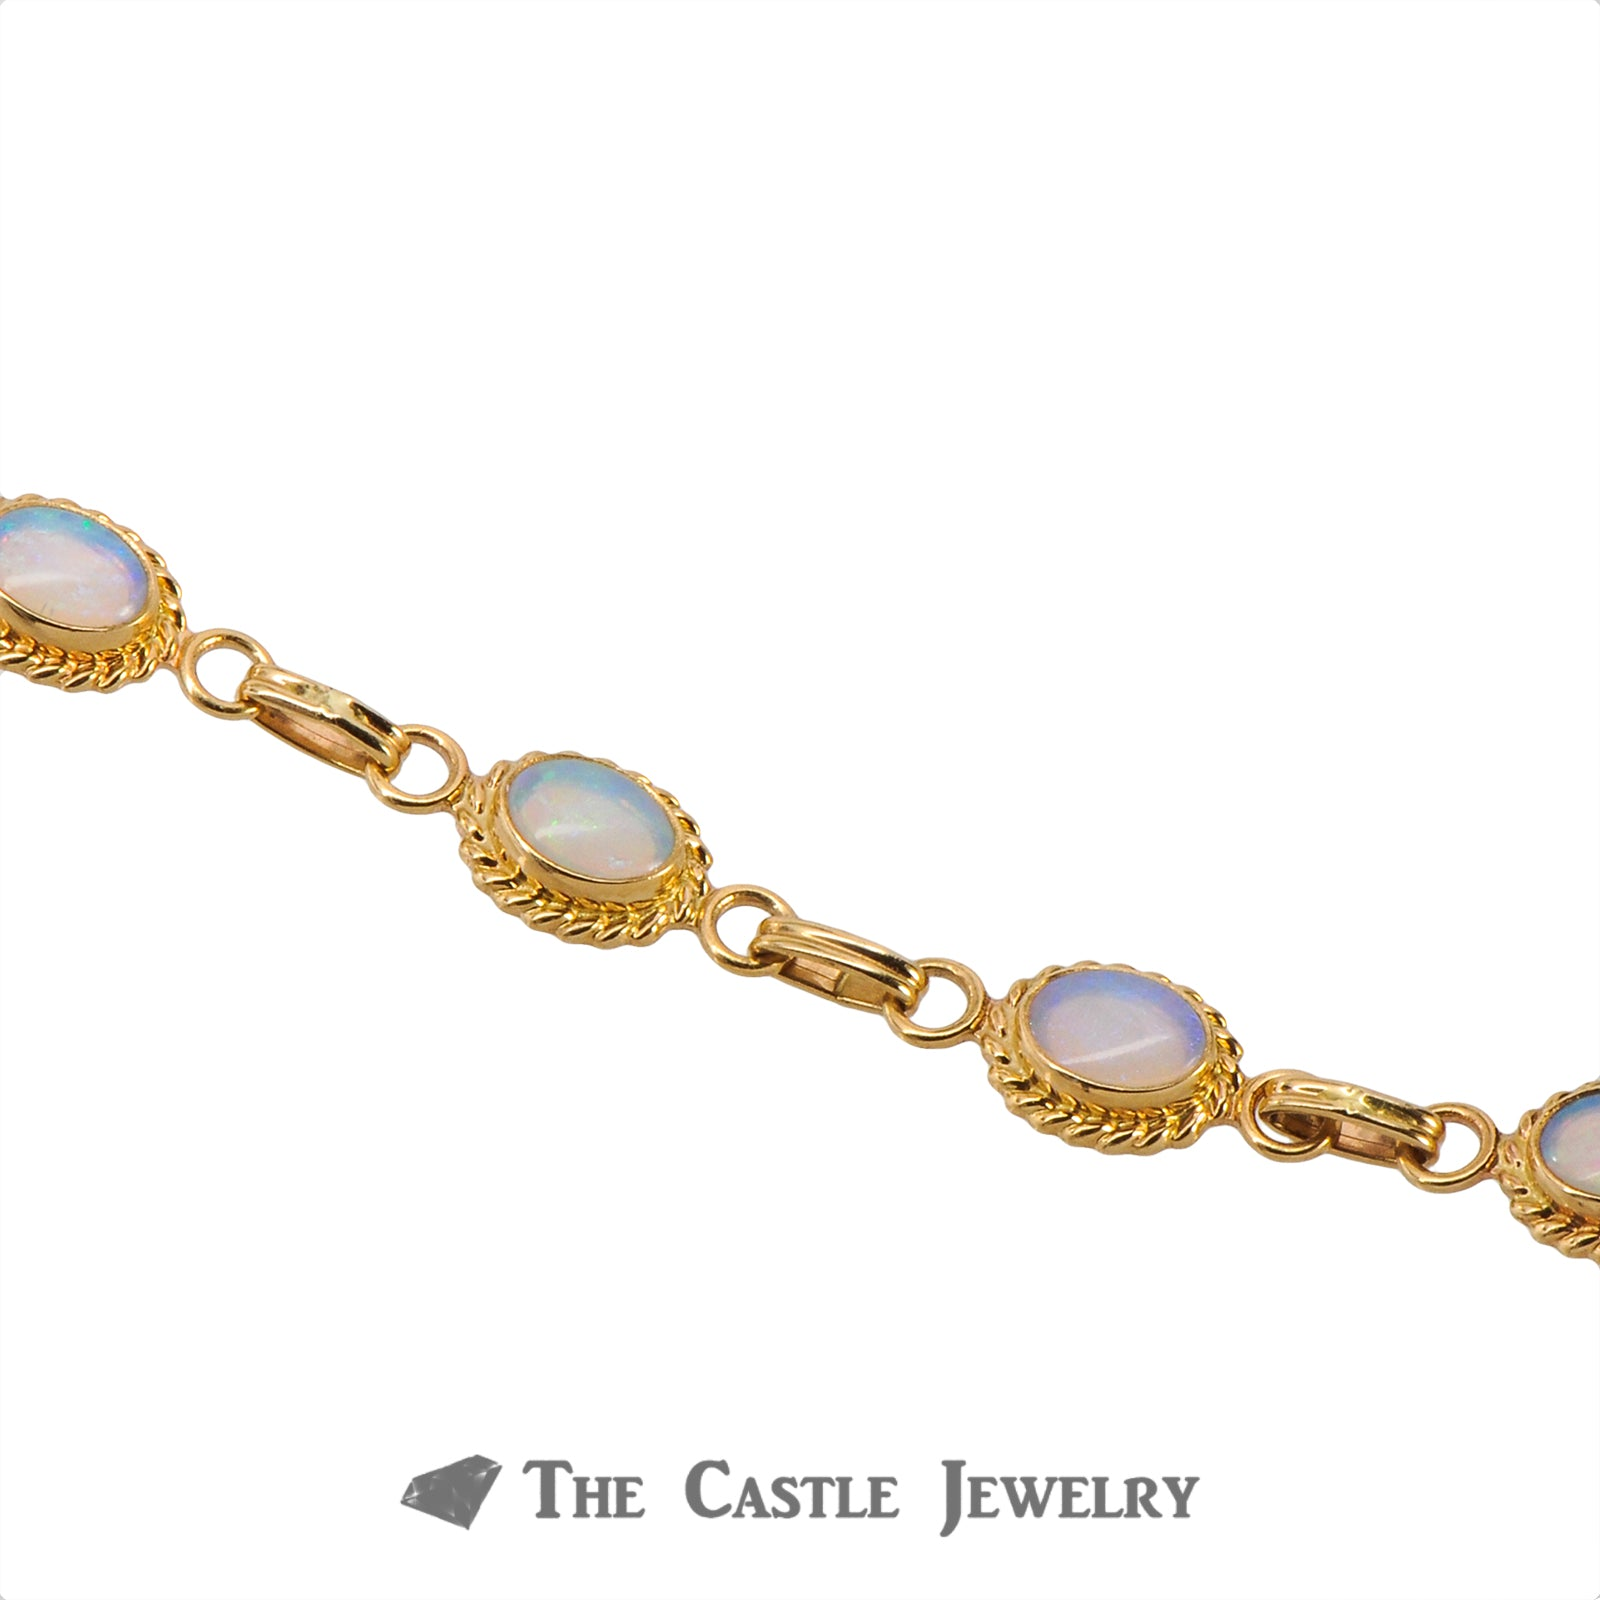 "7"" Oval Opal Bracelet with Rope Design Bezels Crafted in 14K Yellow Gold-3"